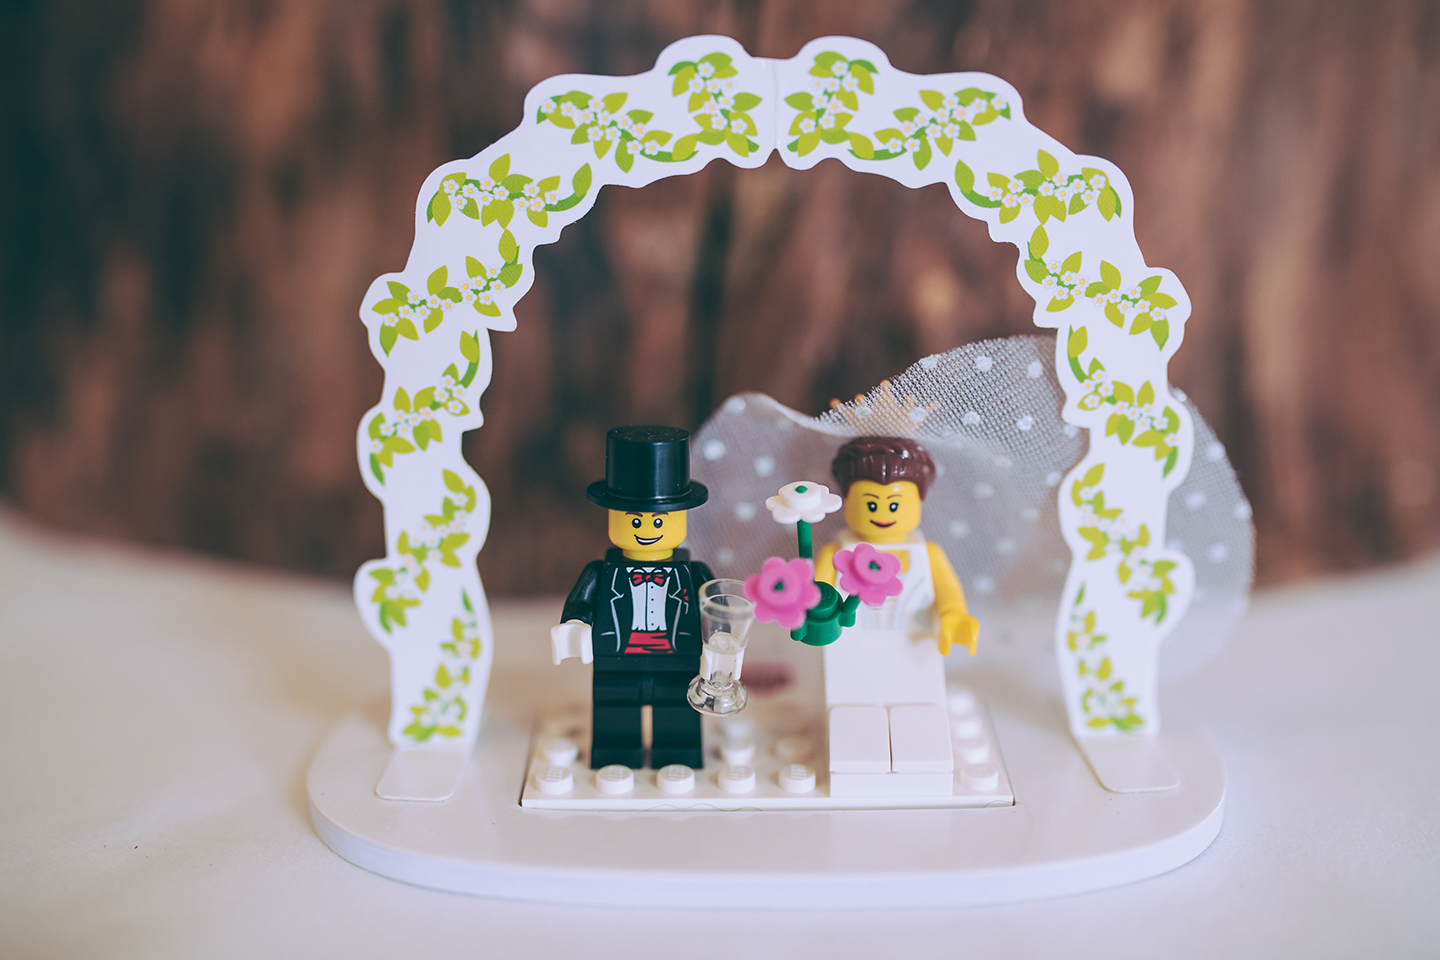 The couple had a lego cake topper for their summer wedding at Bassmead Manor Barns